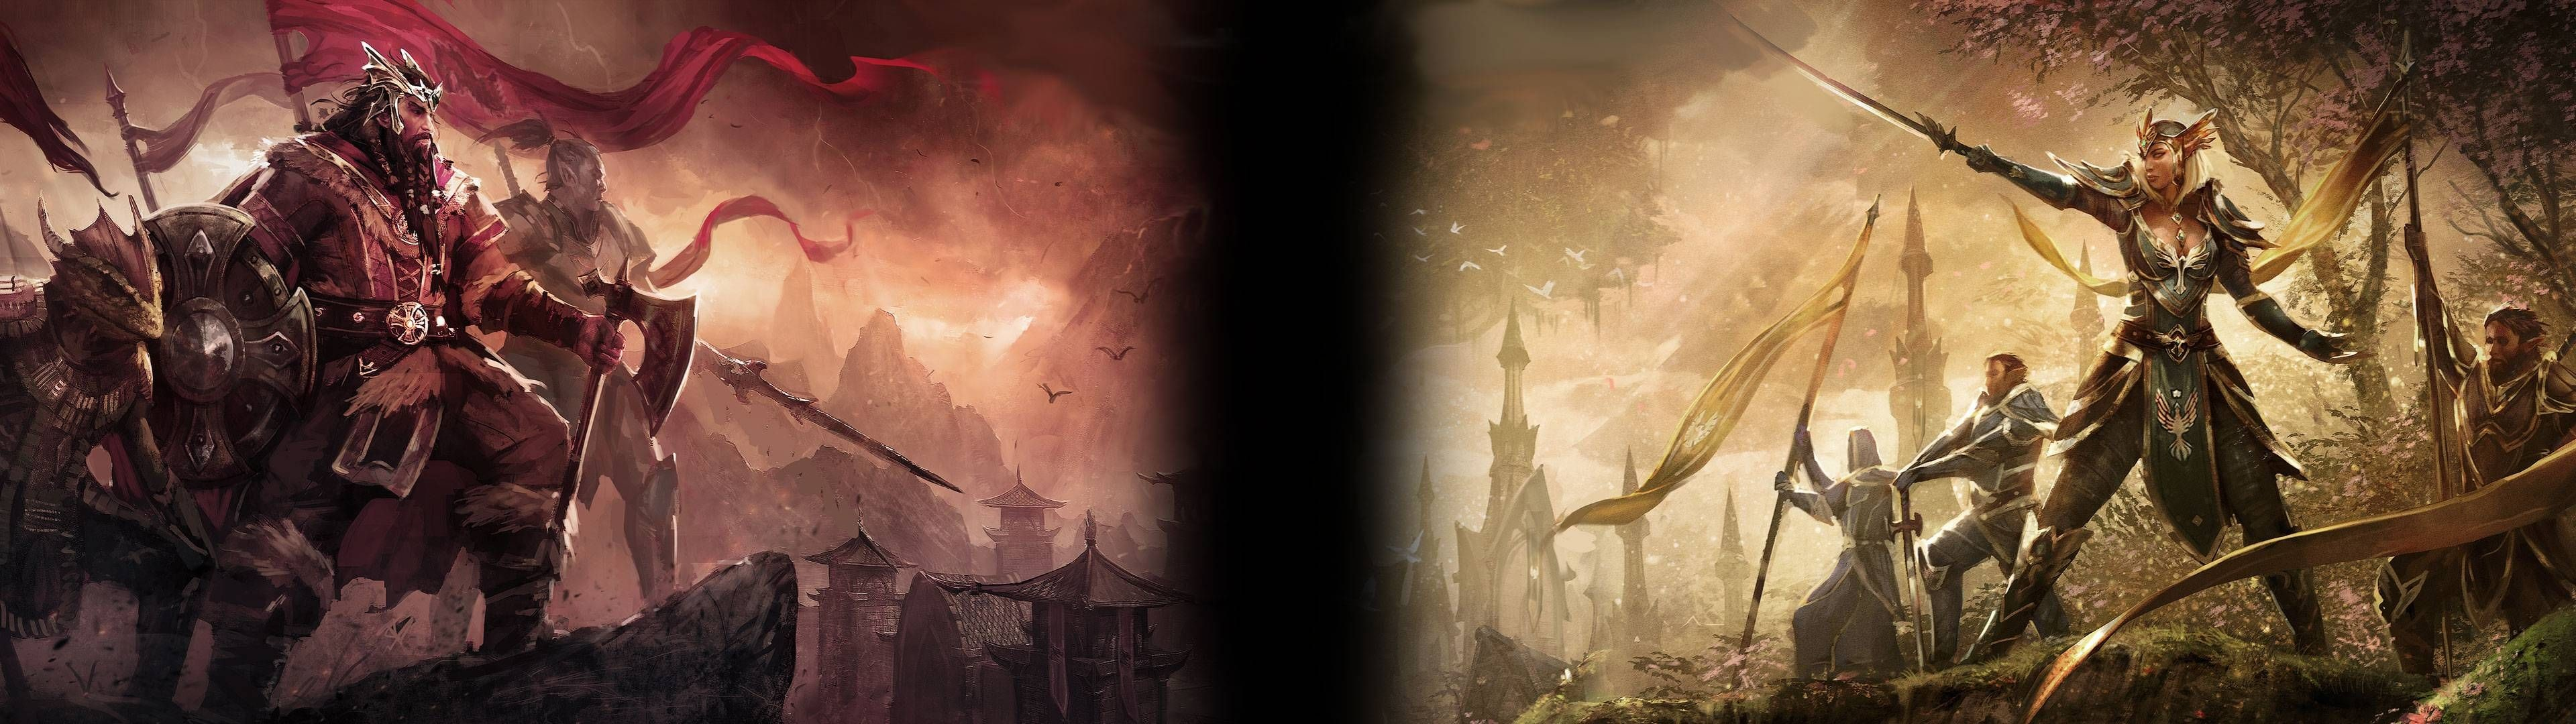 Dual Monitor Wallpapers Video Game (47+ ...